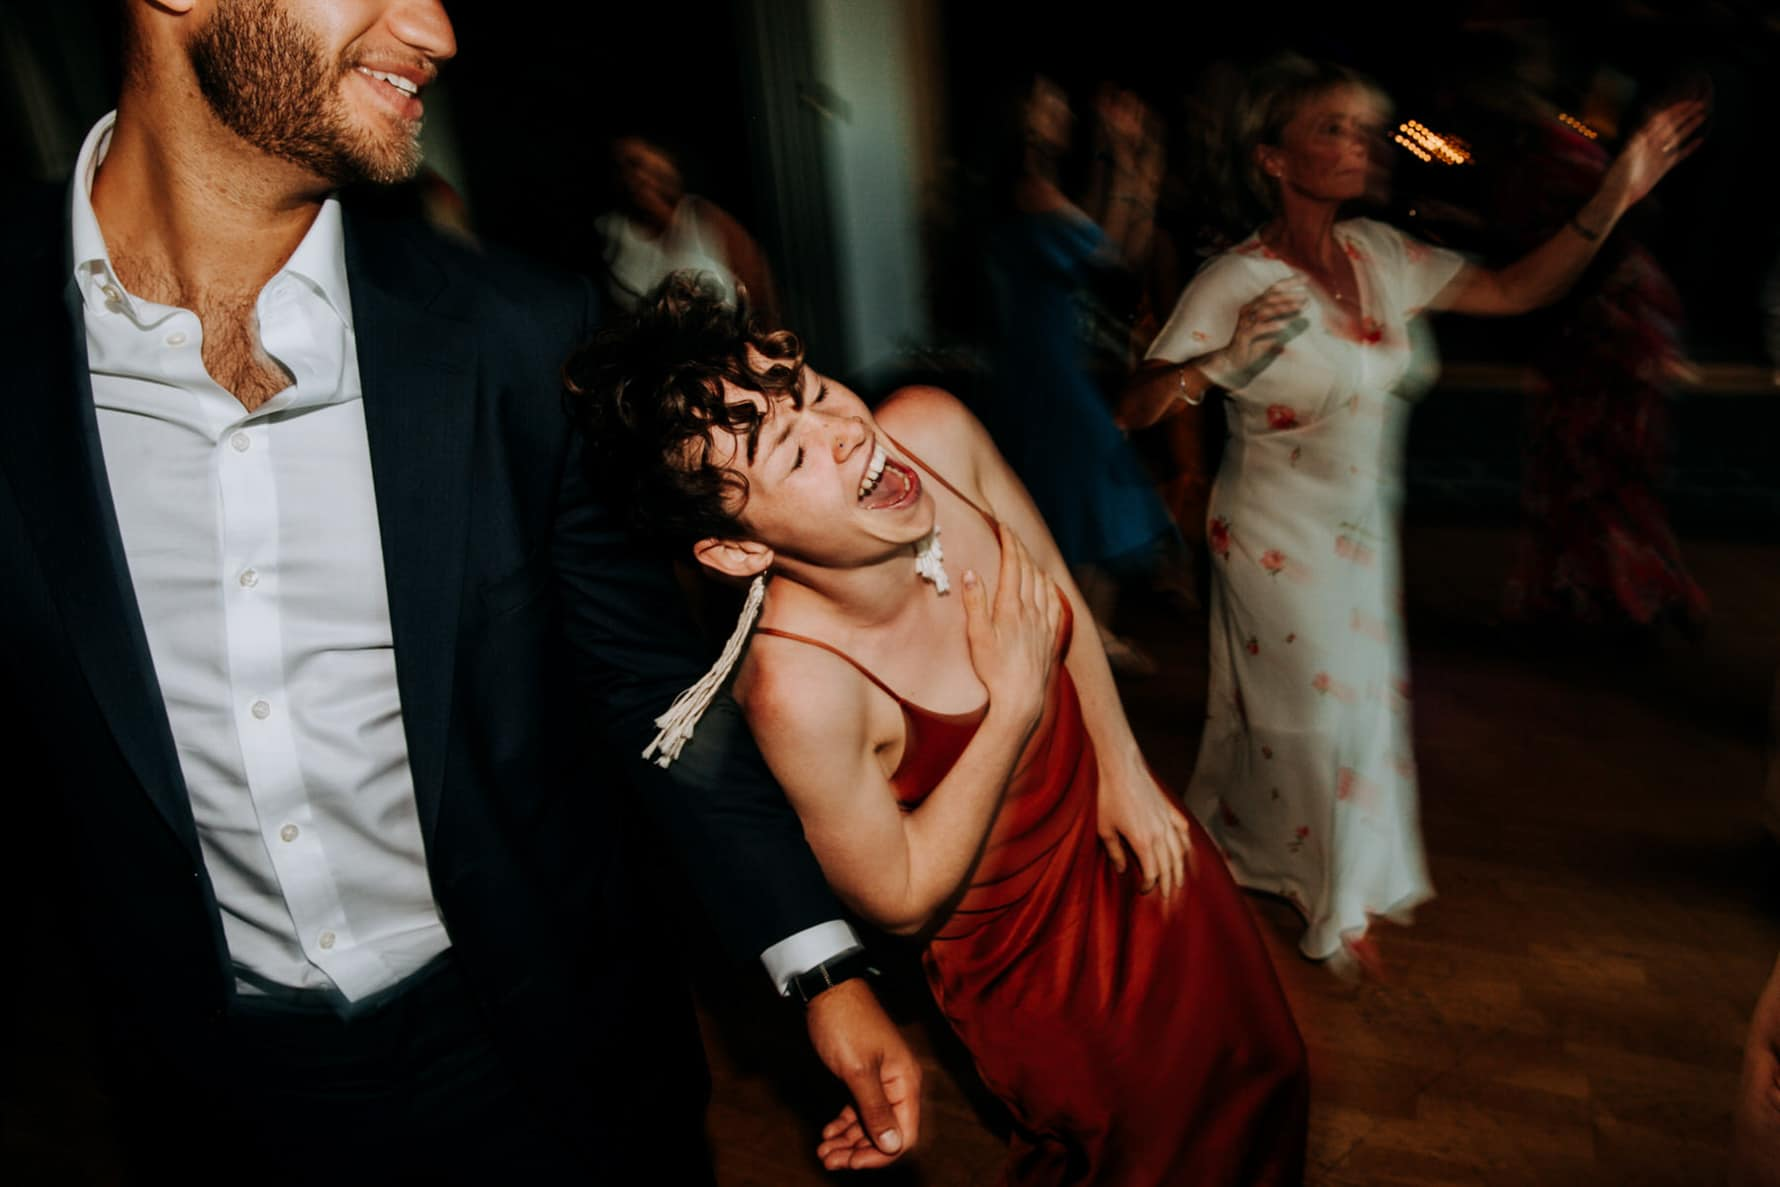 Lady on the dance floor at a wedding laughing